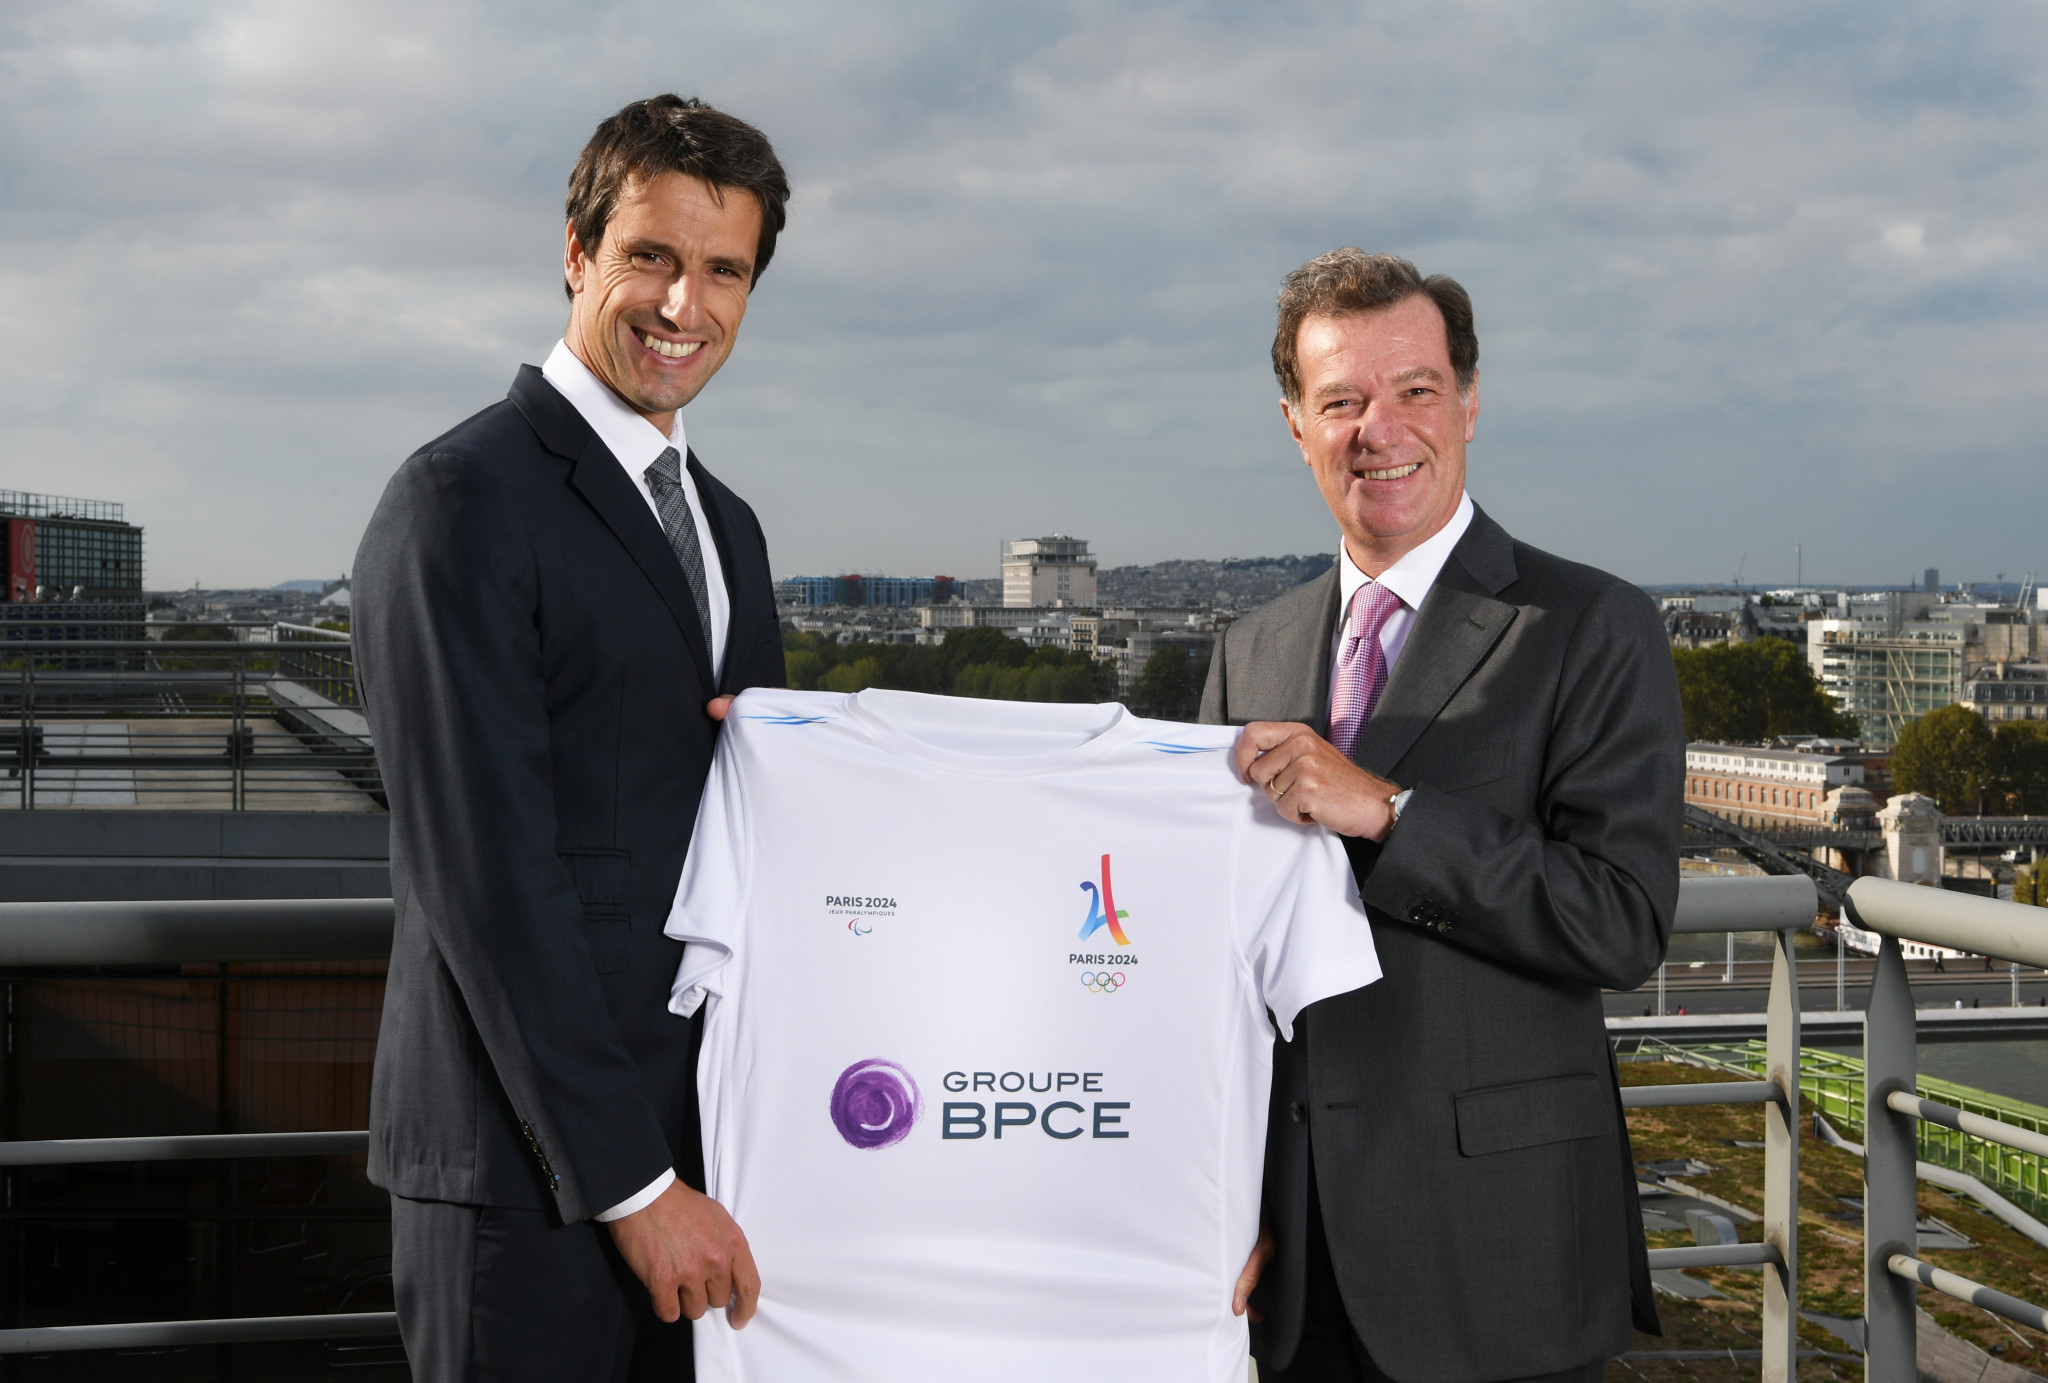 French banking group Groupe BPCE have joined the Paris 2024 national partnership programme ©Paris 2024